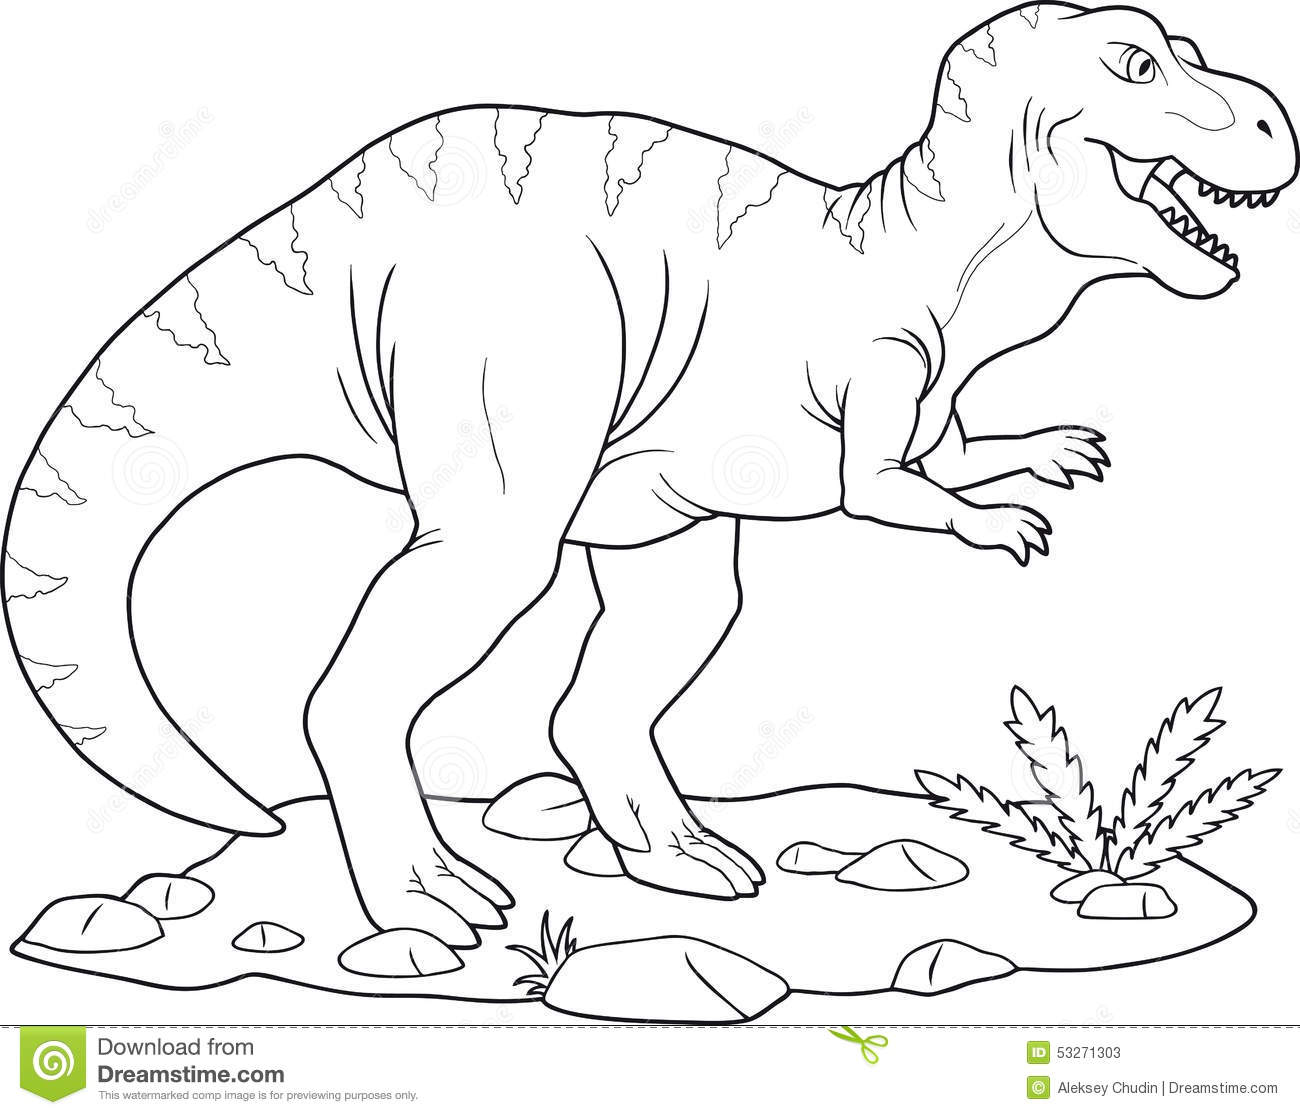 T Rex Dinosaur Coloring Page 1 Dinosaur Coloring Pages